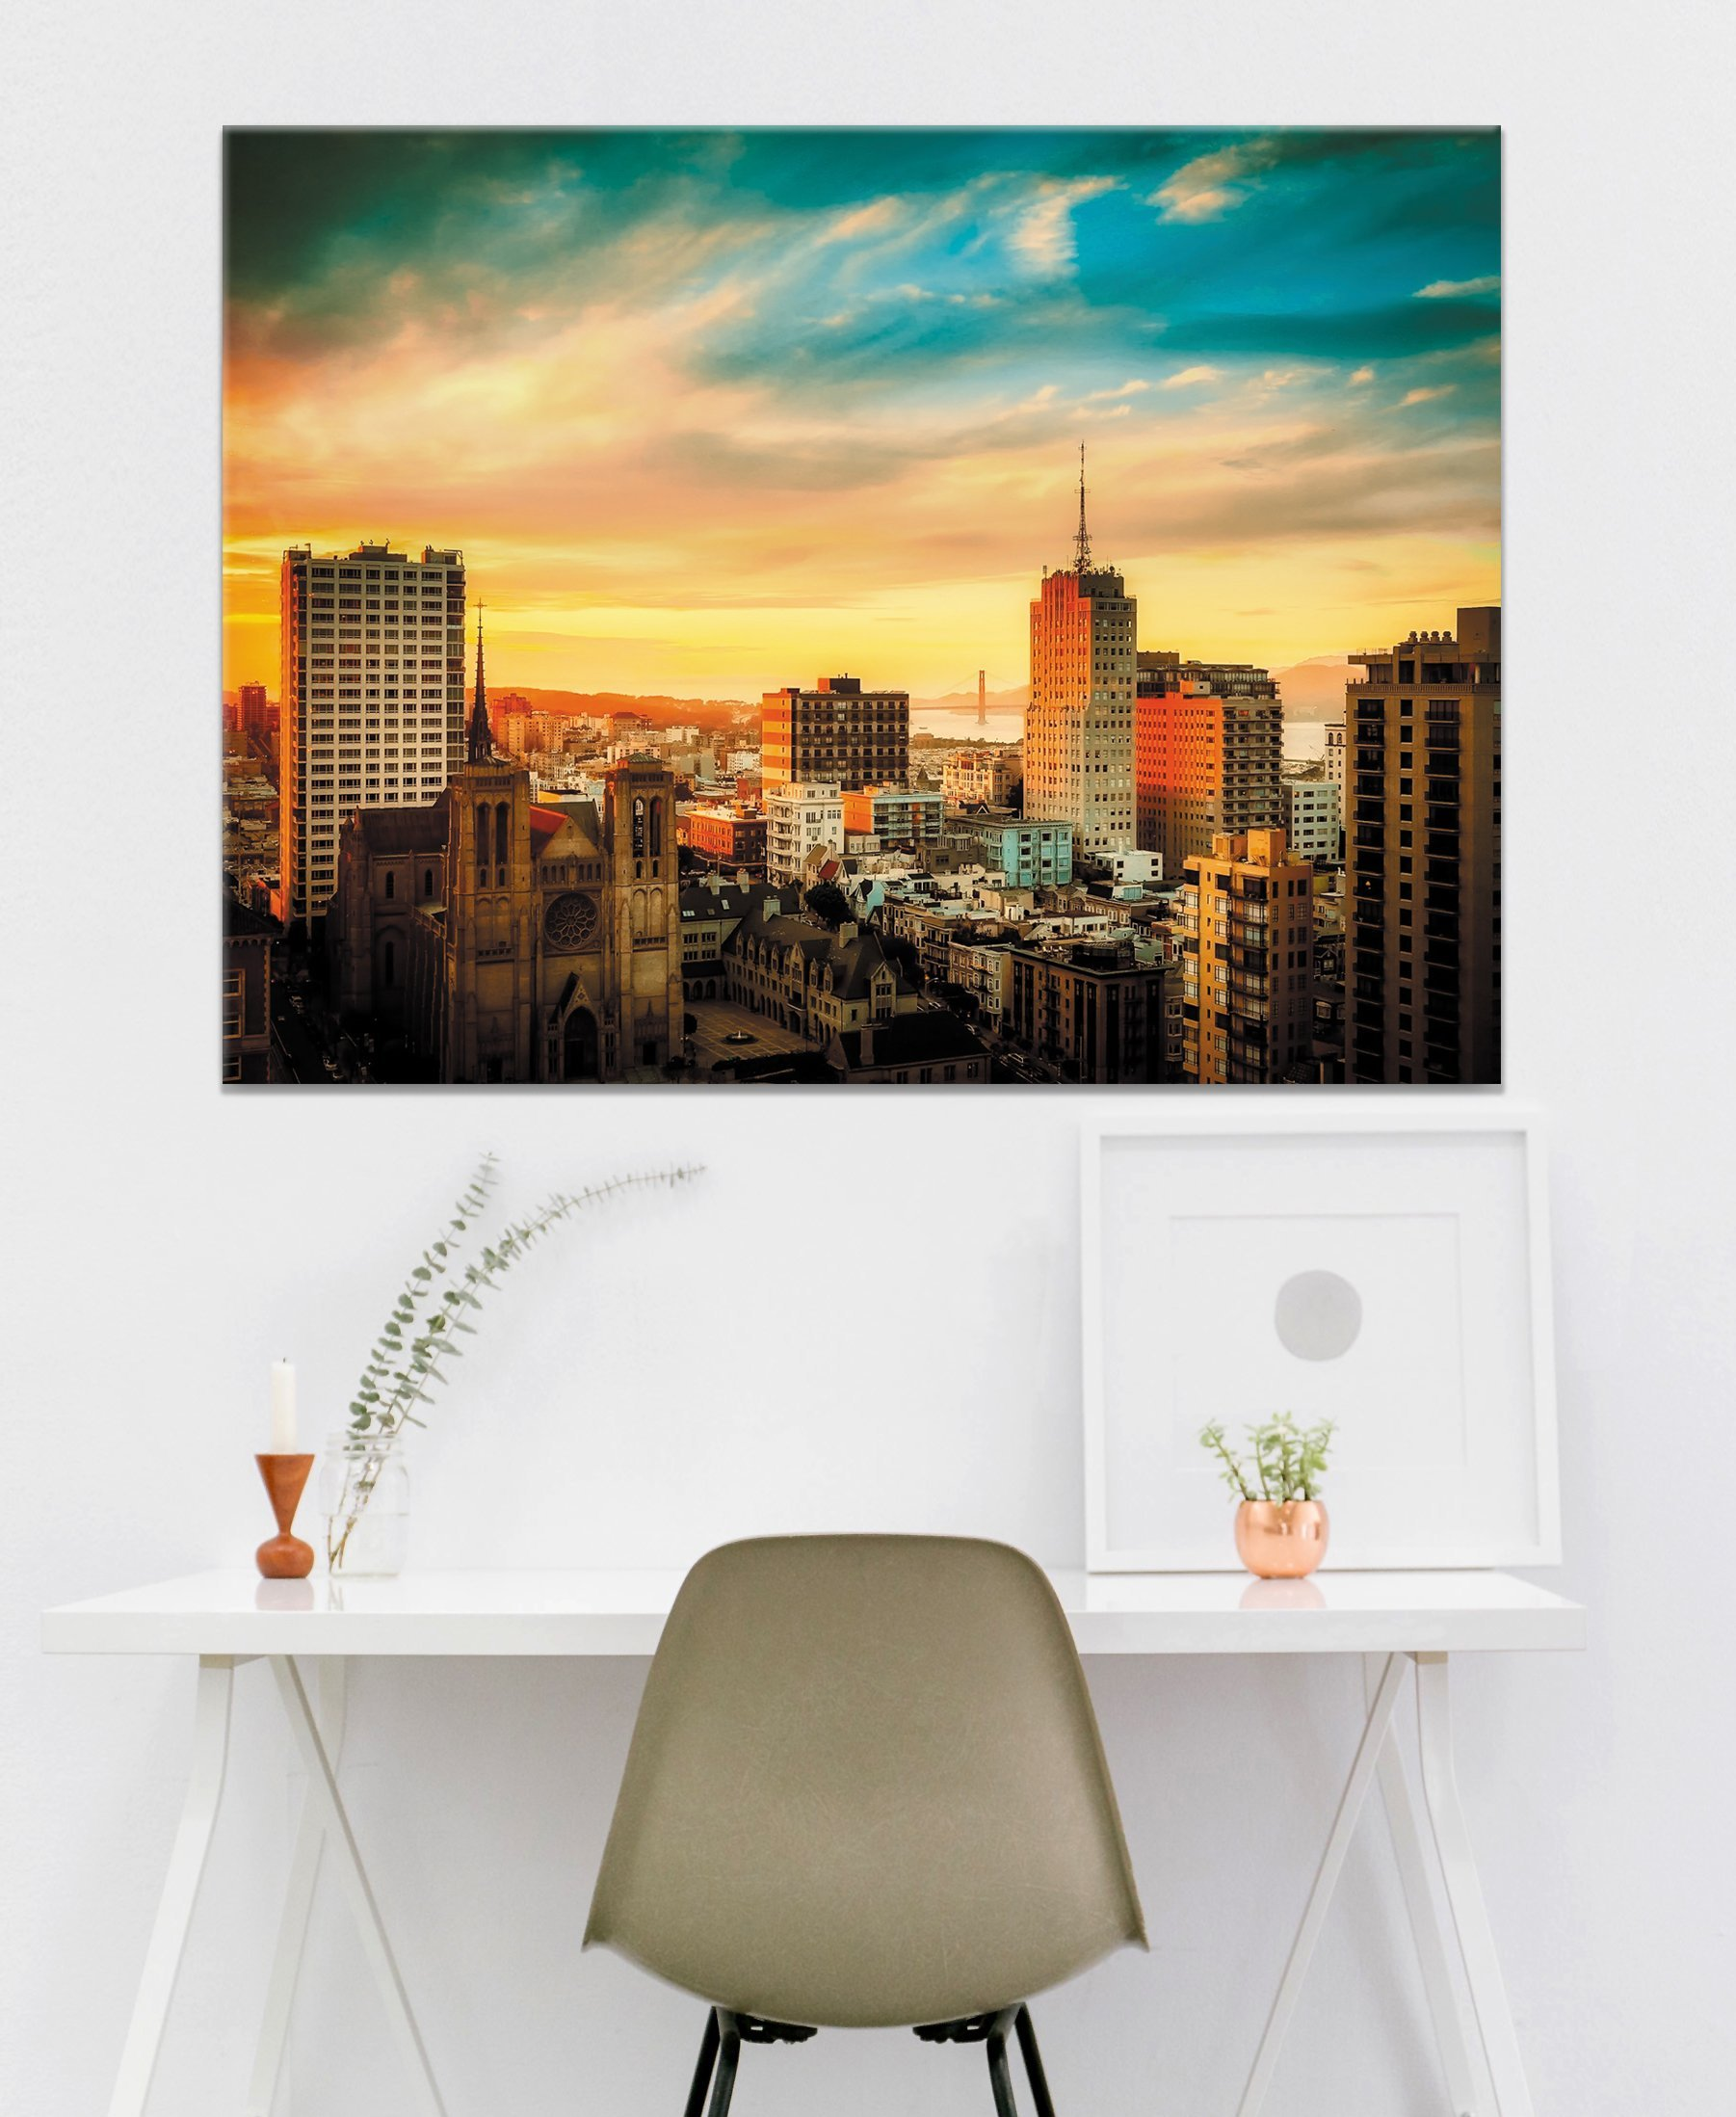 City Wall Art Sunset Cityscape Wood Frame Ready To Hang Wall